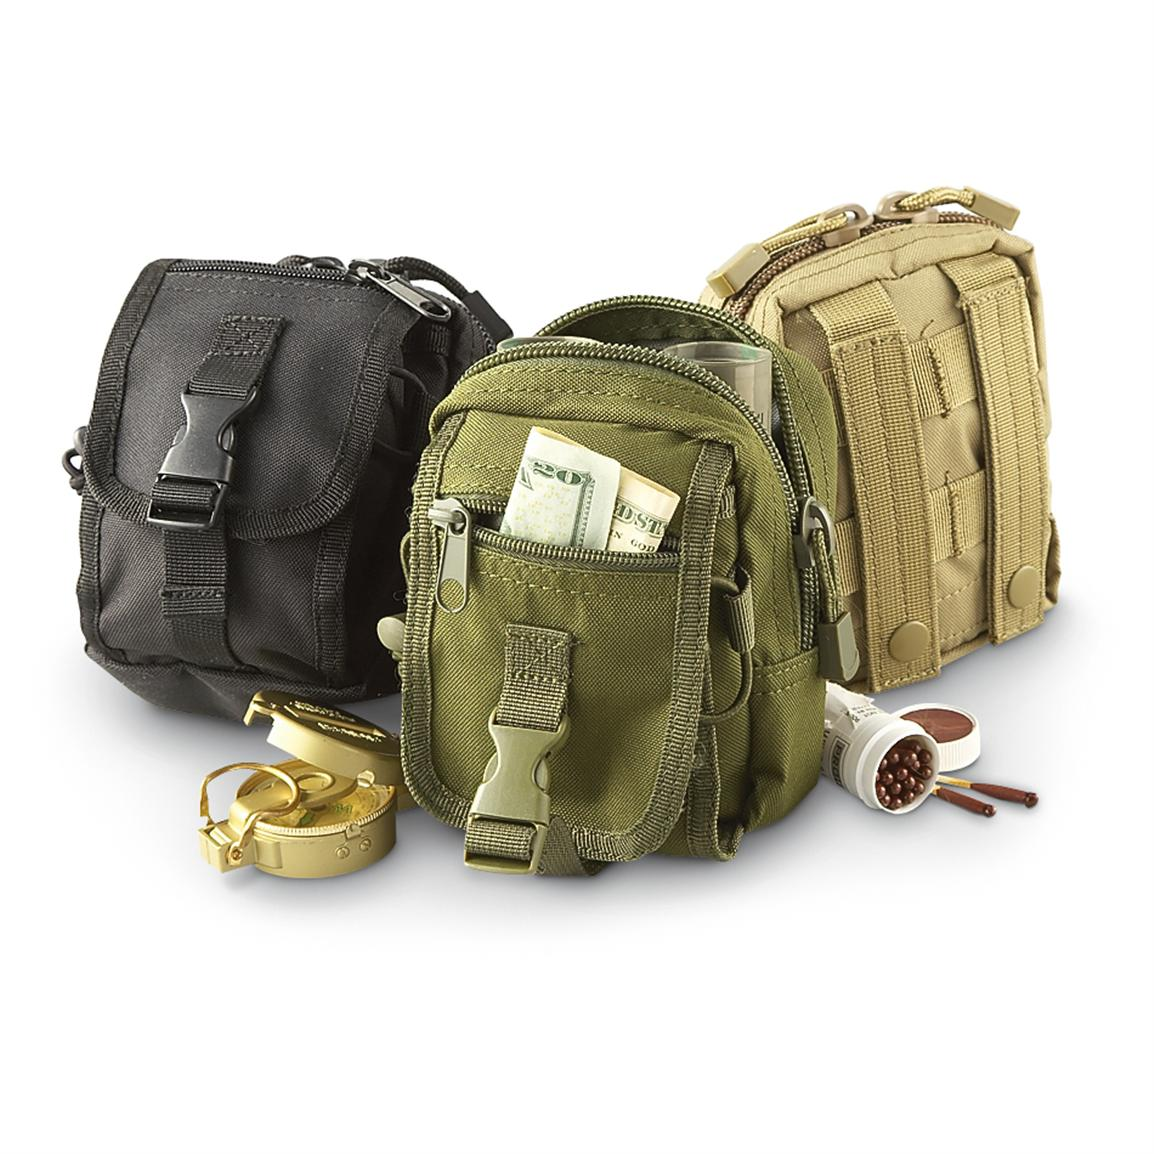 Multi-purpose Accessory Pouch • From left to right: Black, Olive Drab, Coyote Tan • 54-cu. in. capacity